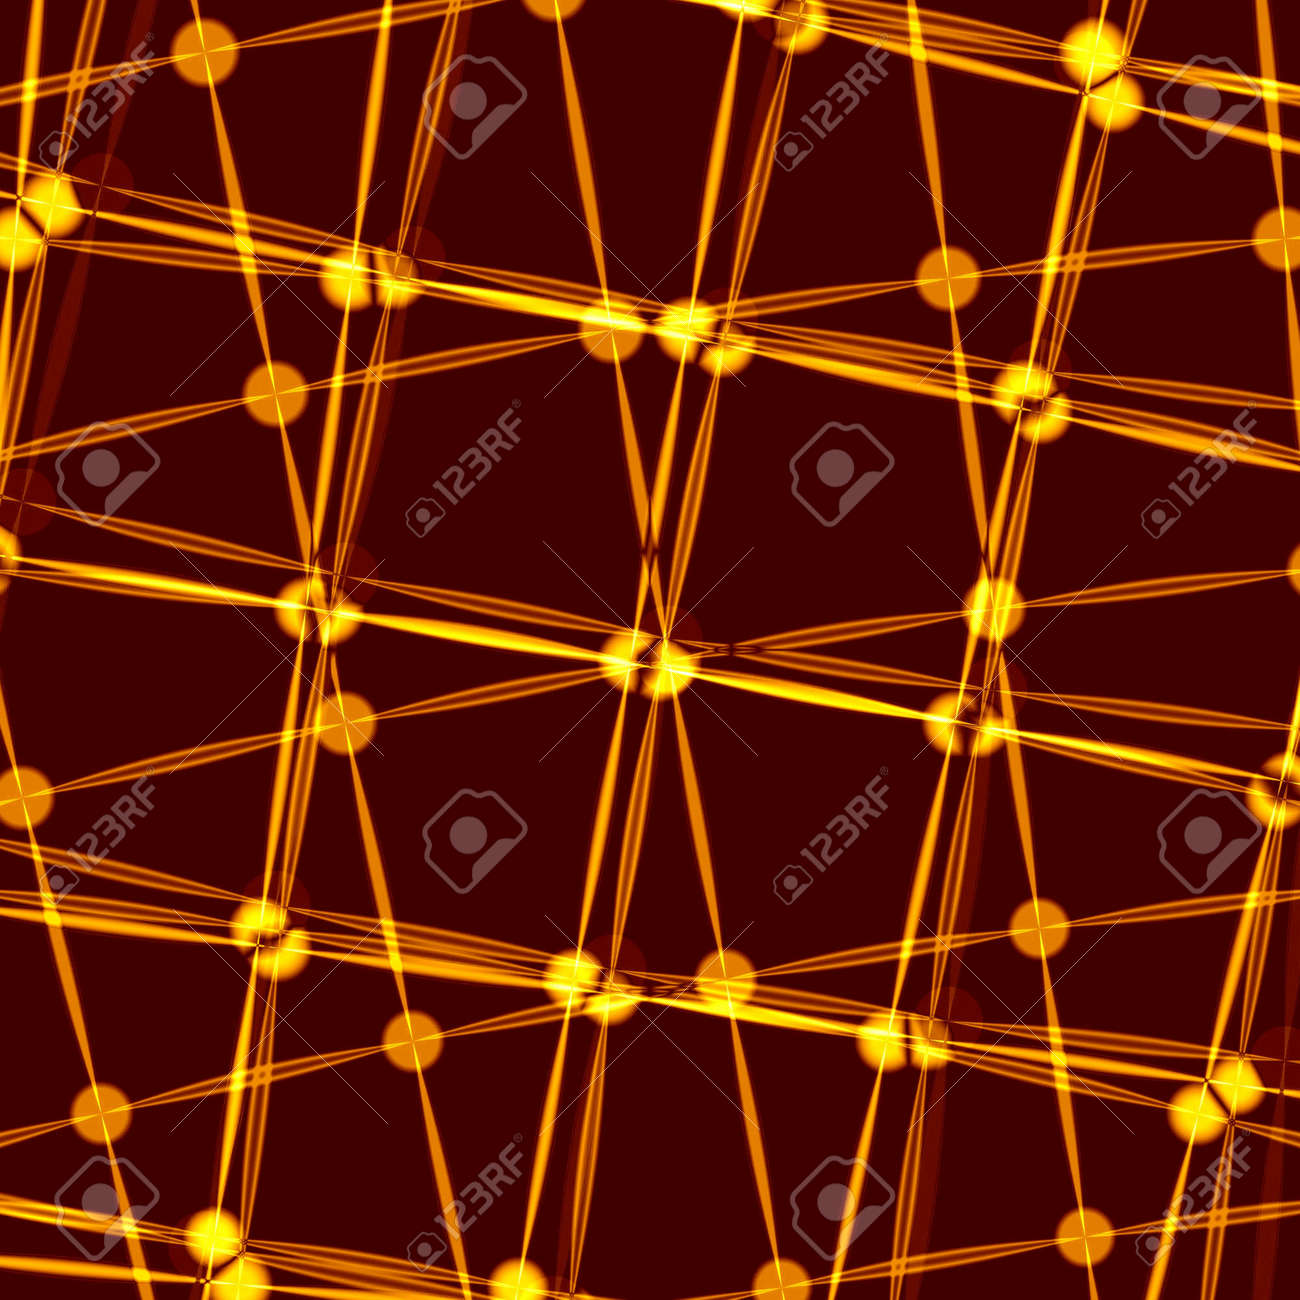 golden abstract background Stock Photo - 6468455